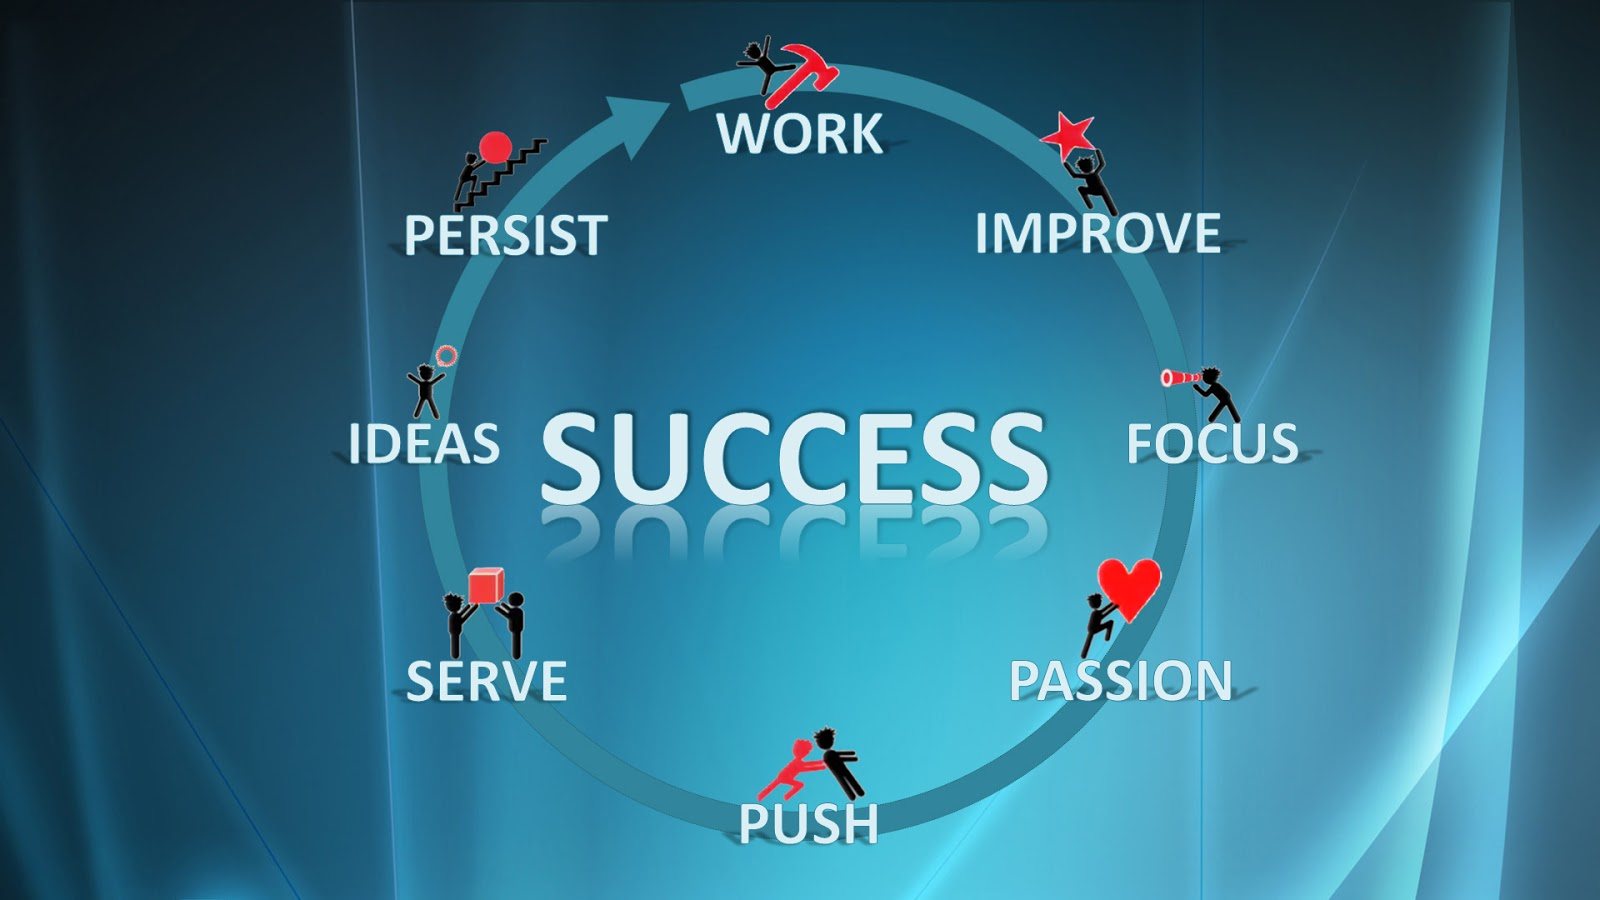 8 secrets of success The secret to success  et tells a great story and shares great advice but this is more of a success story versus shedding light on his secrets to success,  $8.